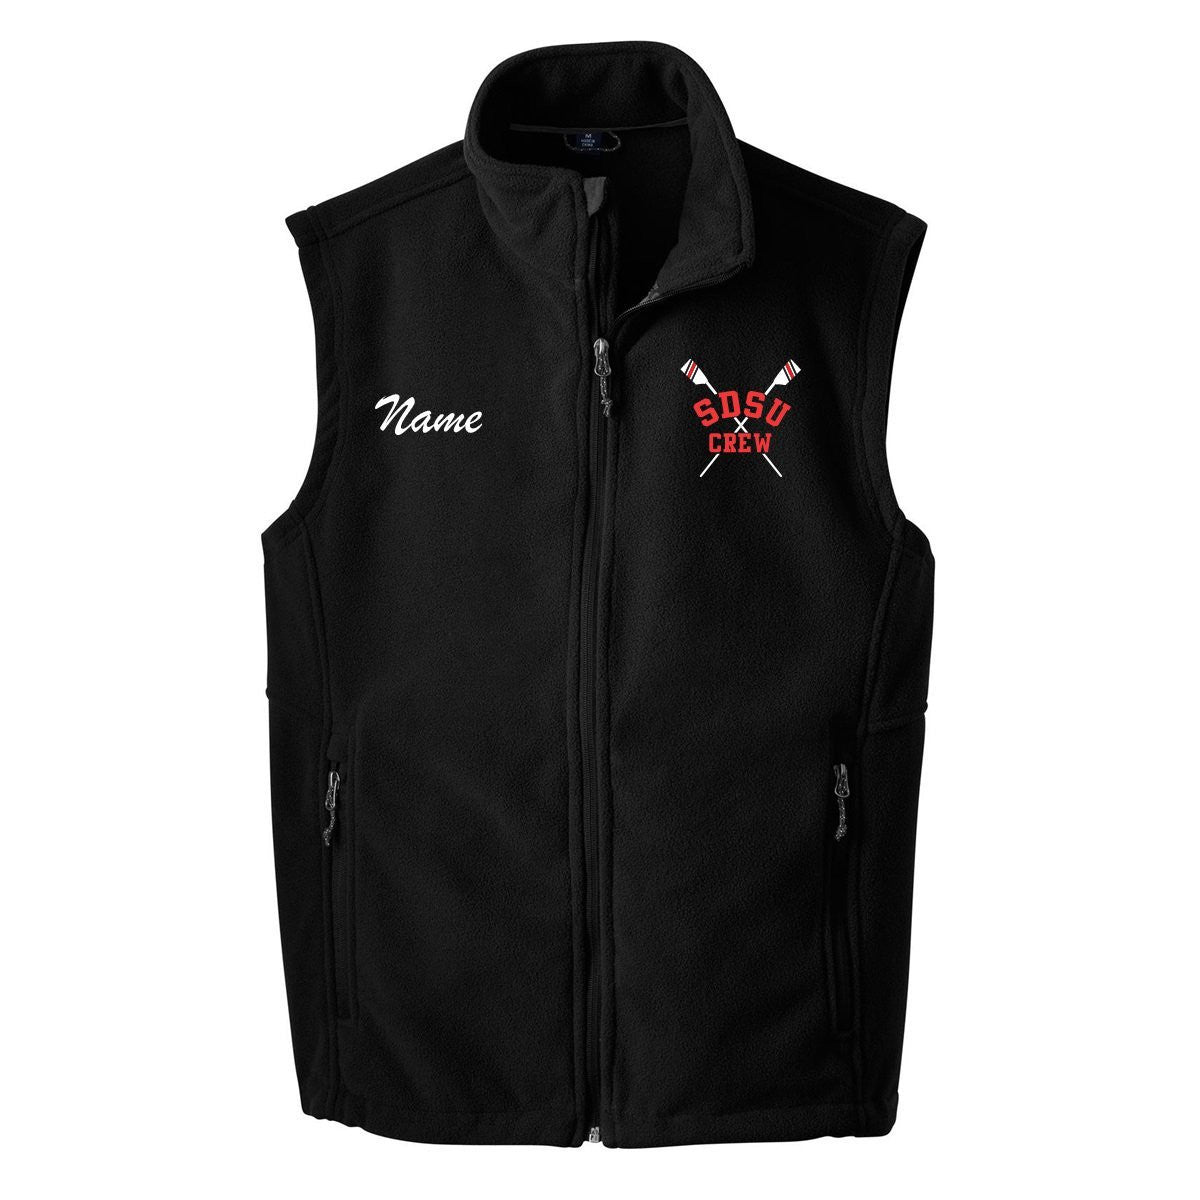 SDSU Crew Team Nylon/Fleece Vest